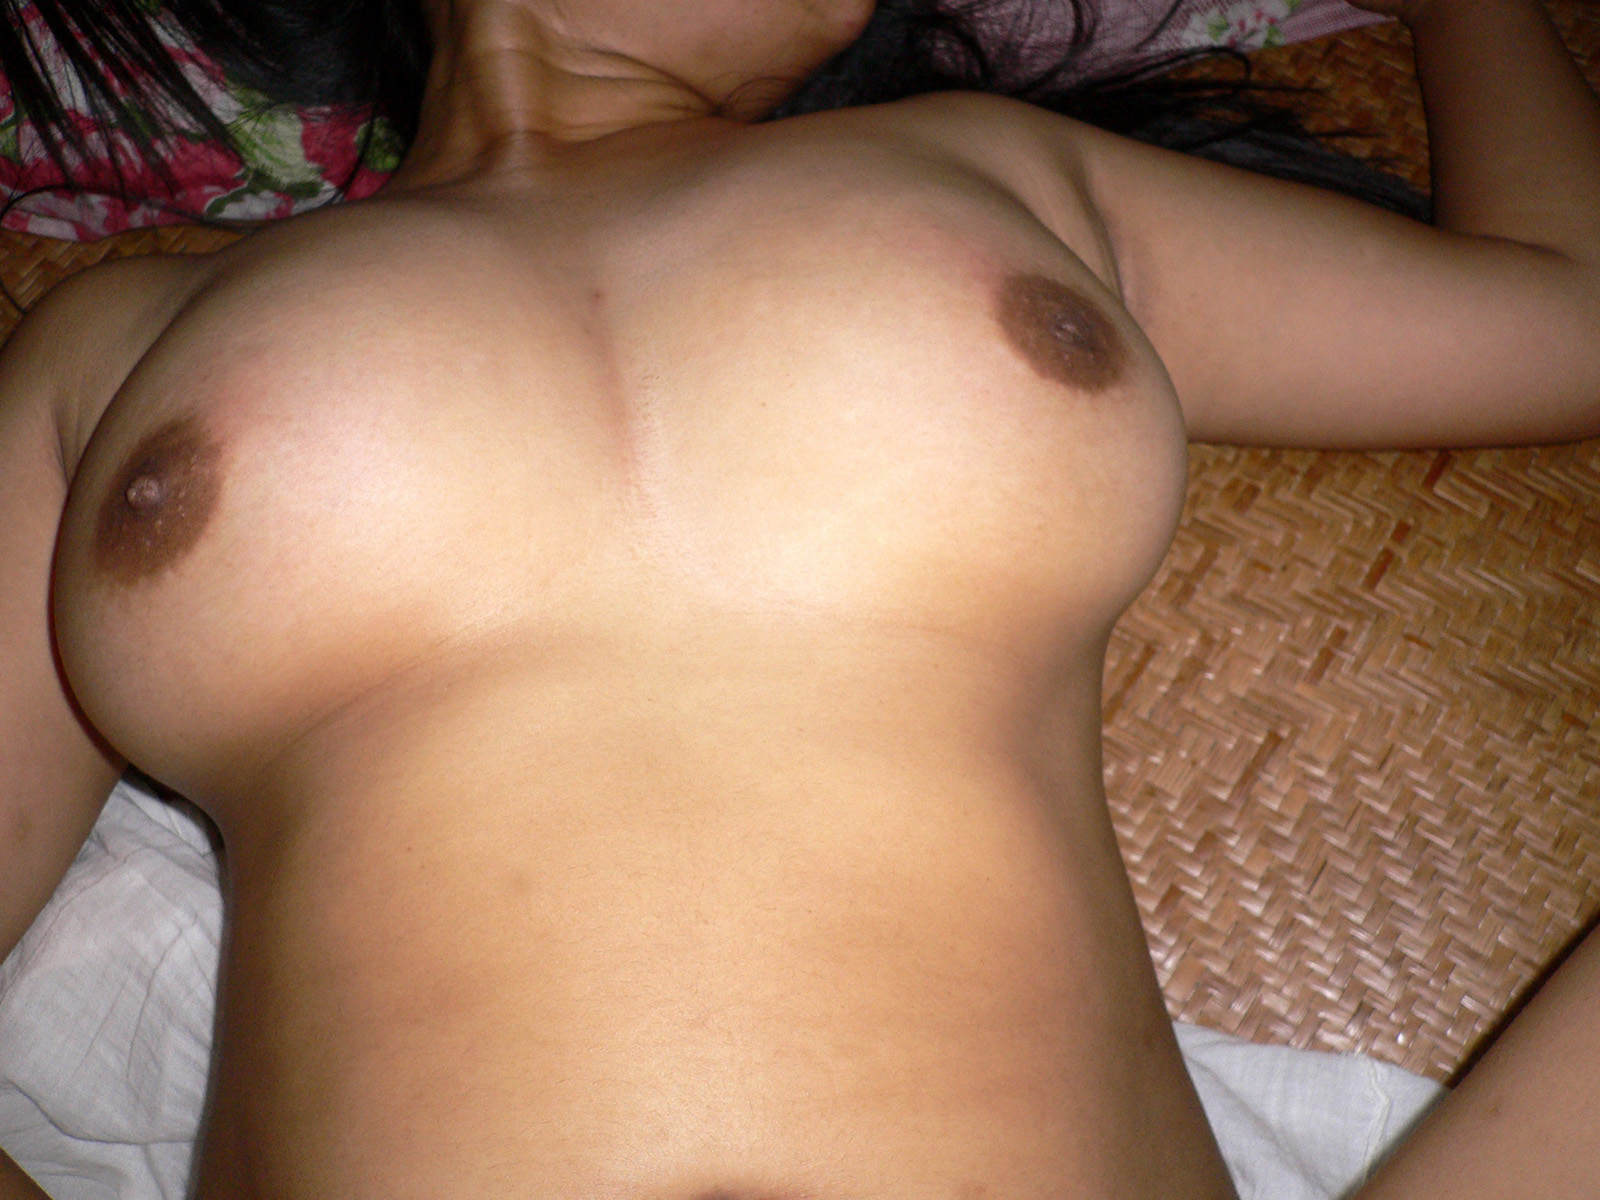 Remarkable, Myanmar sexy girls hd photo apologise, but